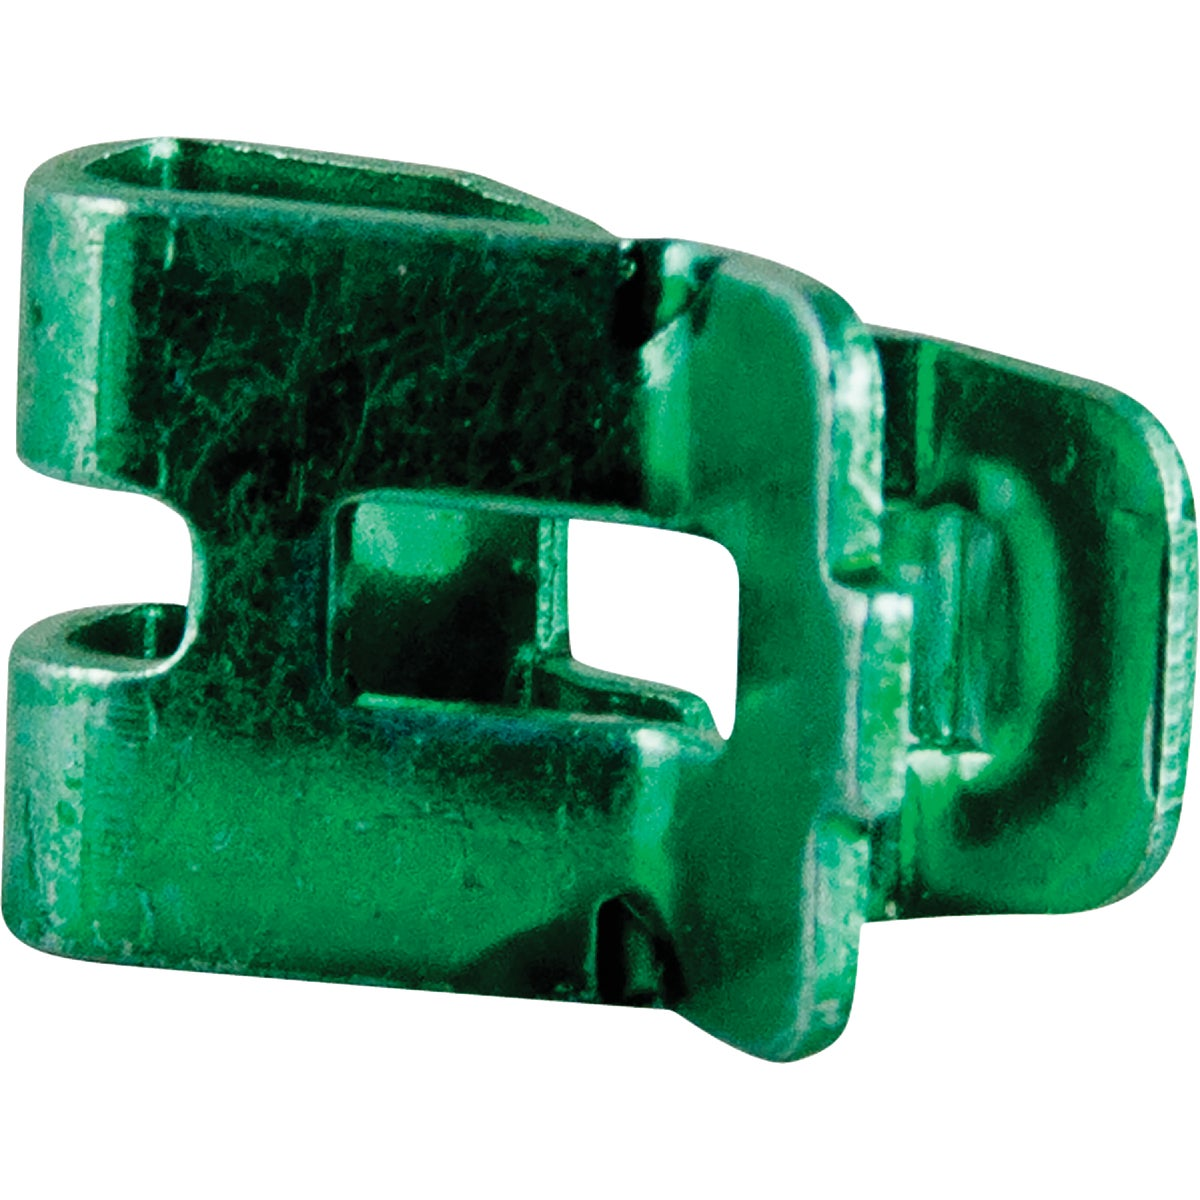 GROUNDING CLIP - GGC-1508 by G B Electrical Inc